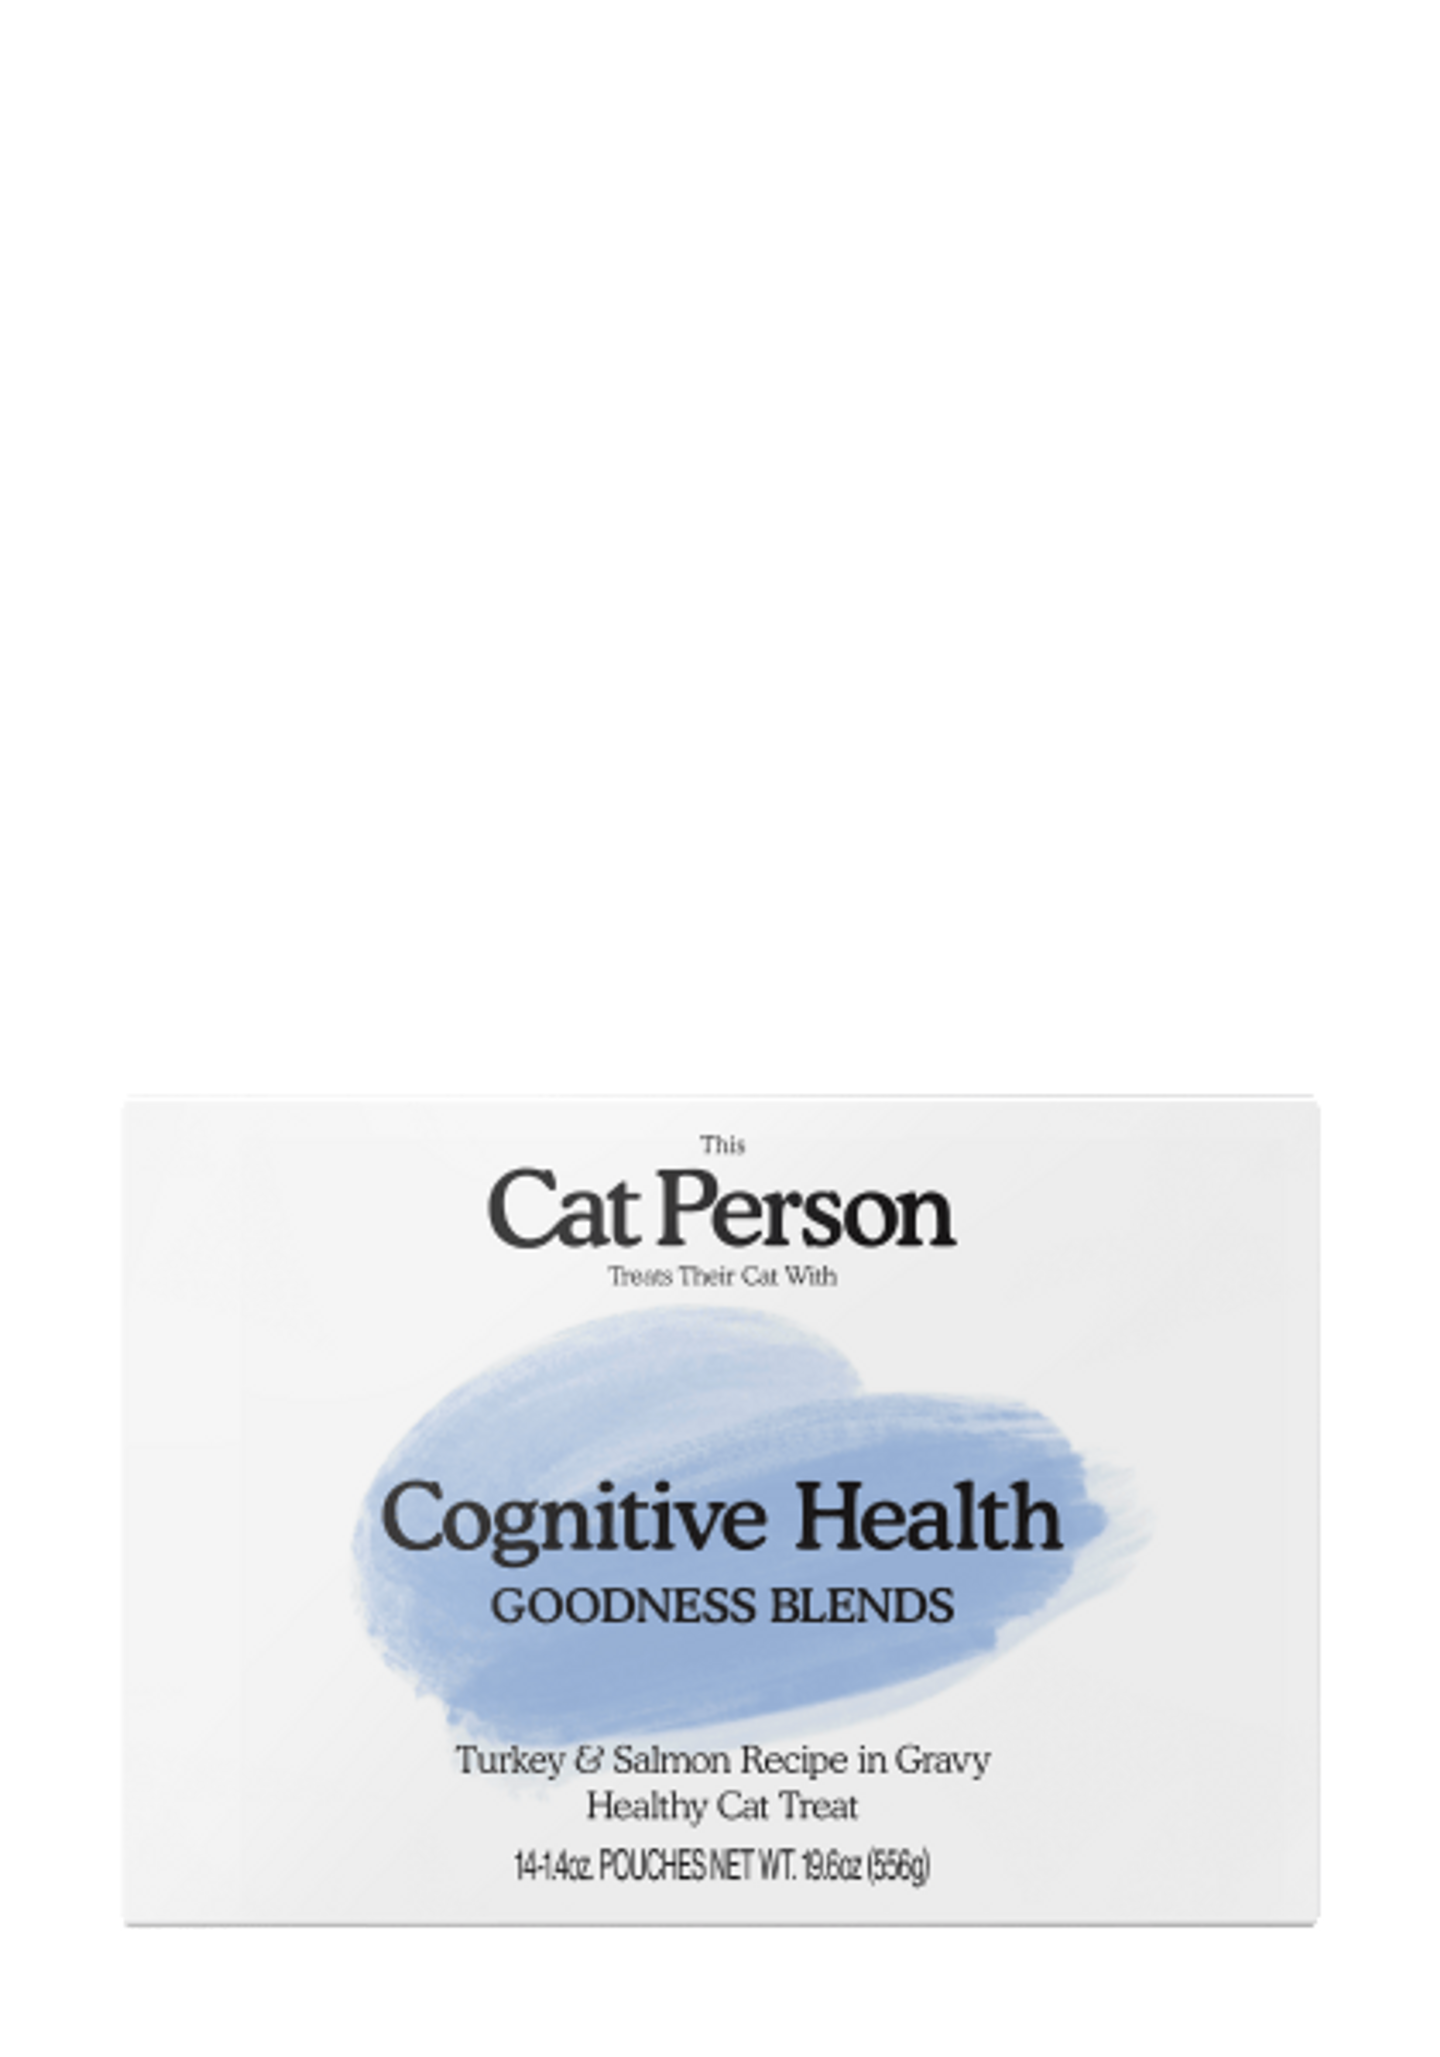 Box of Cat Person Cognitive Health Goodness Blends healthy cat treat